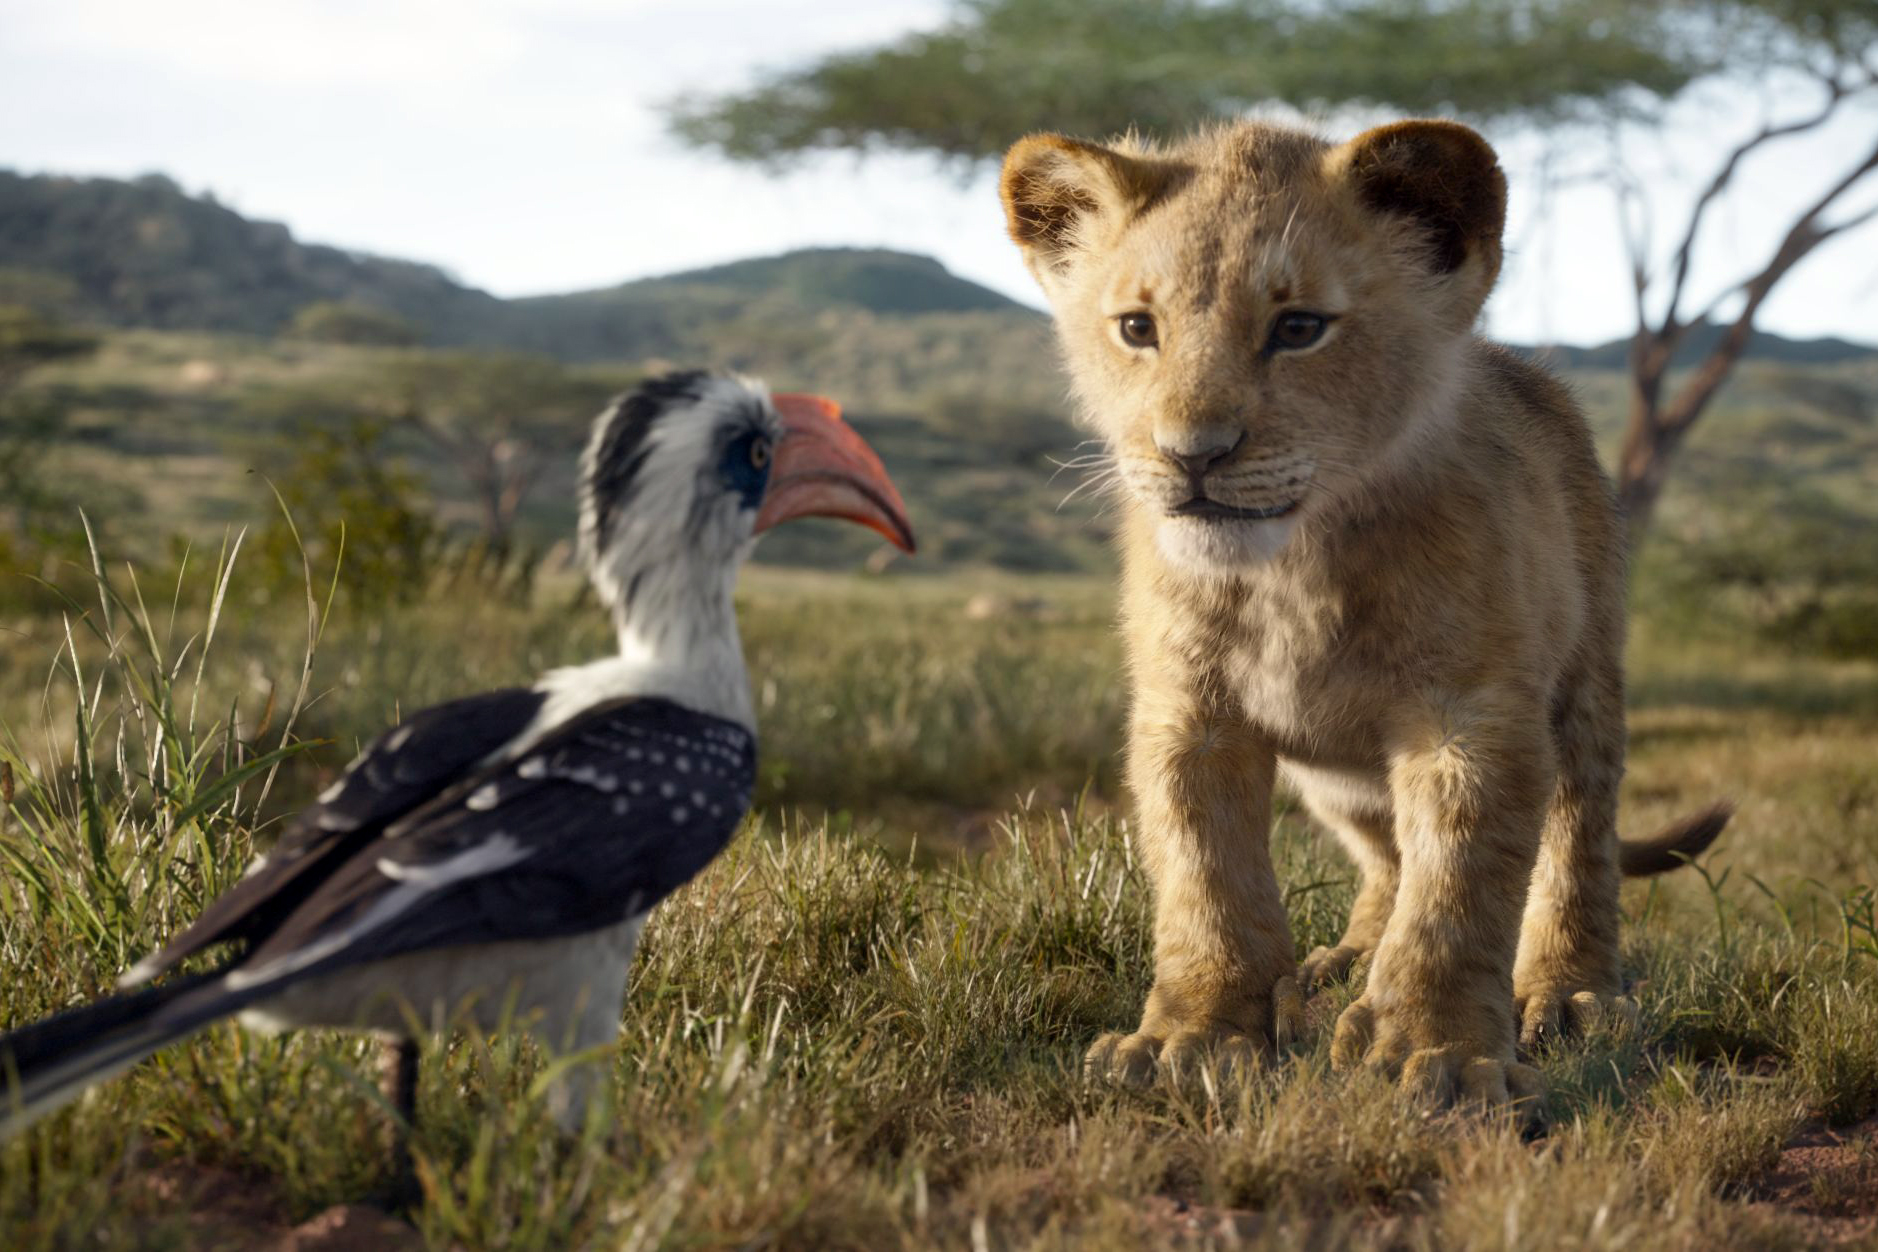 Best Merch for Fans of 'The Lion King' and Disney